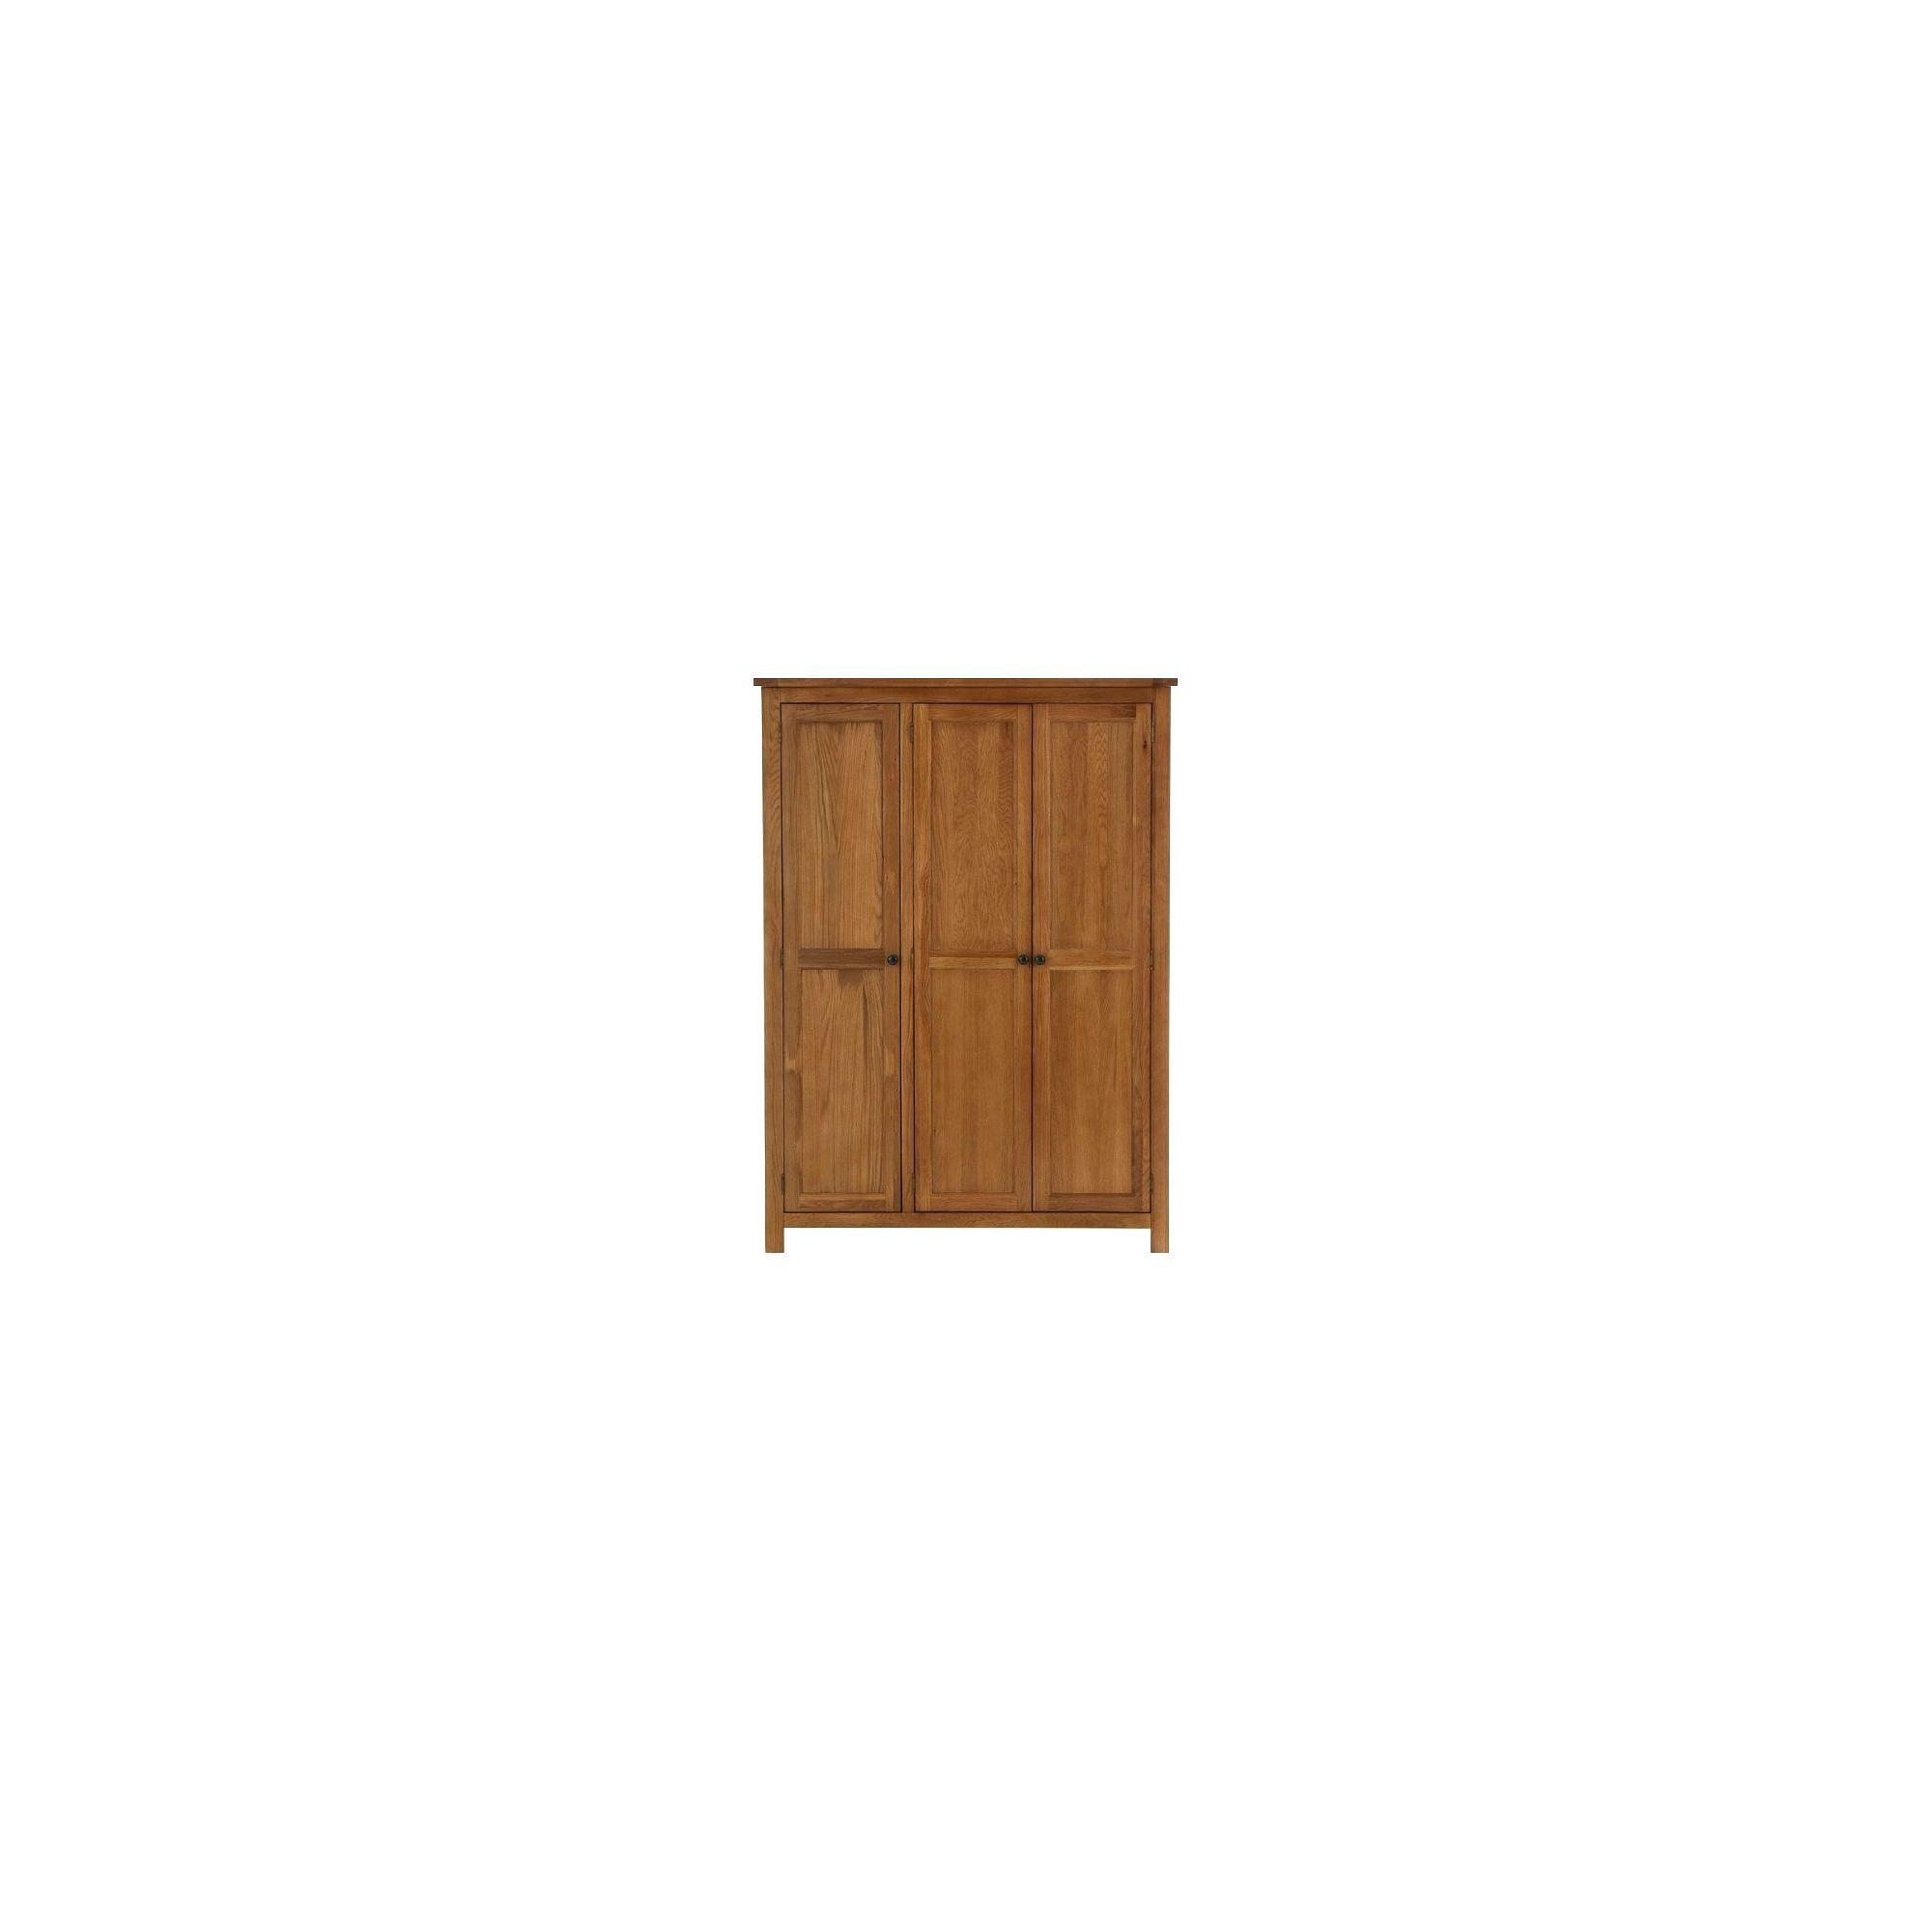 Thorndon Eden Three Door Wardrobe in Warm Oak at Tesco Direct